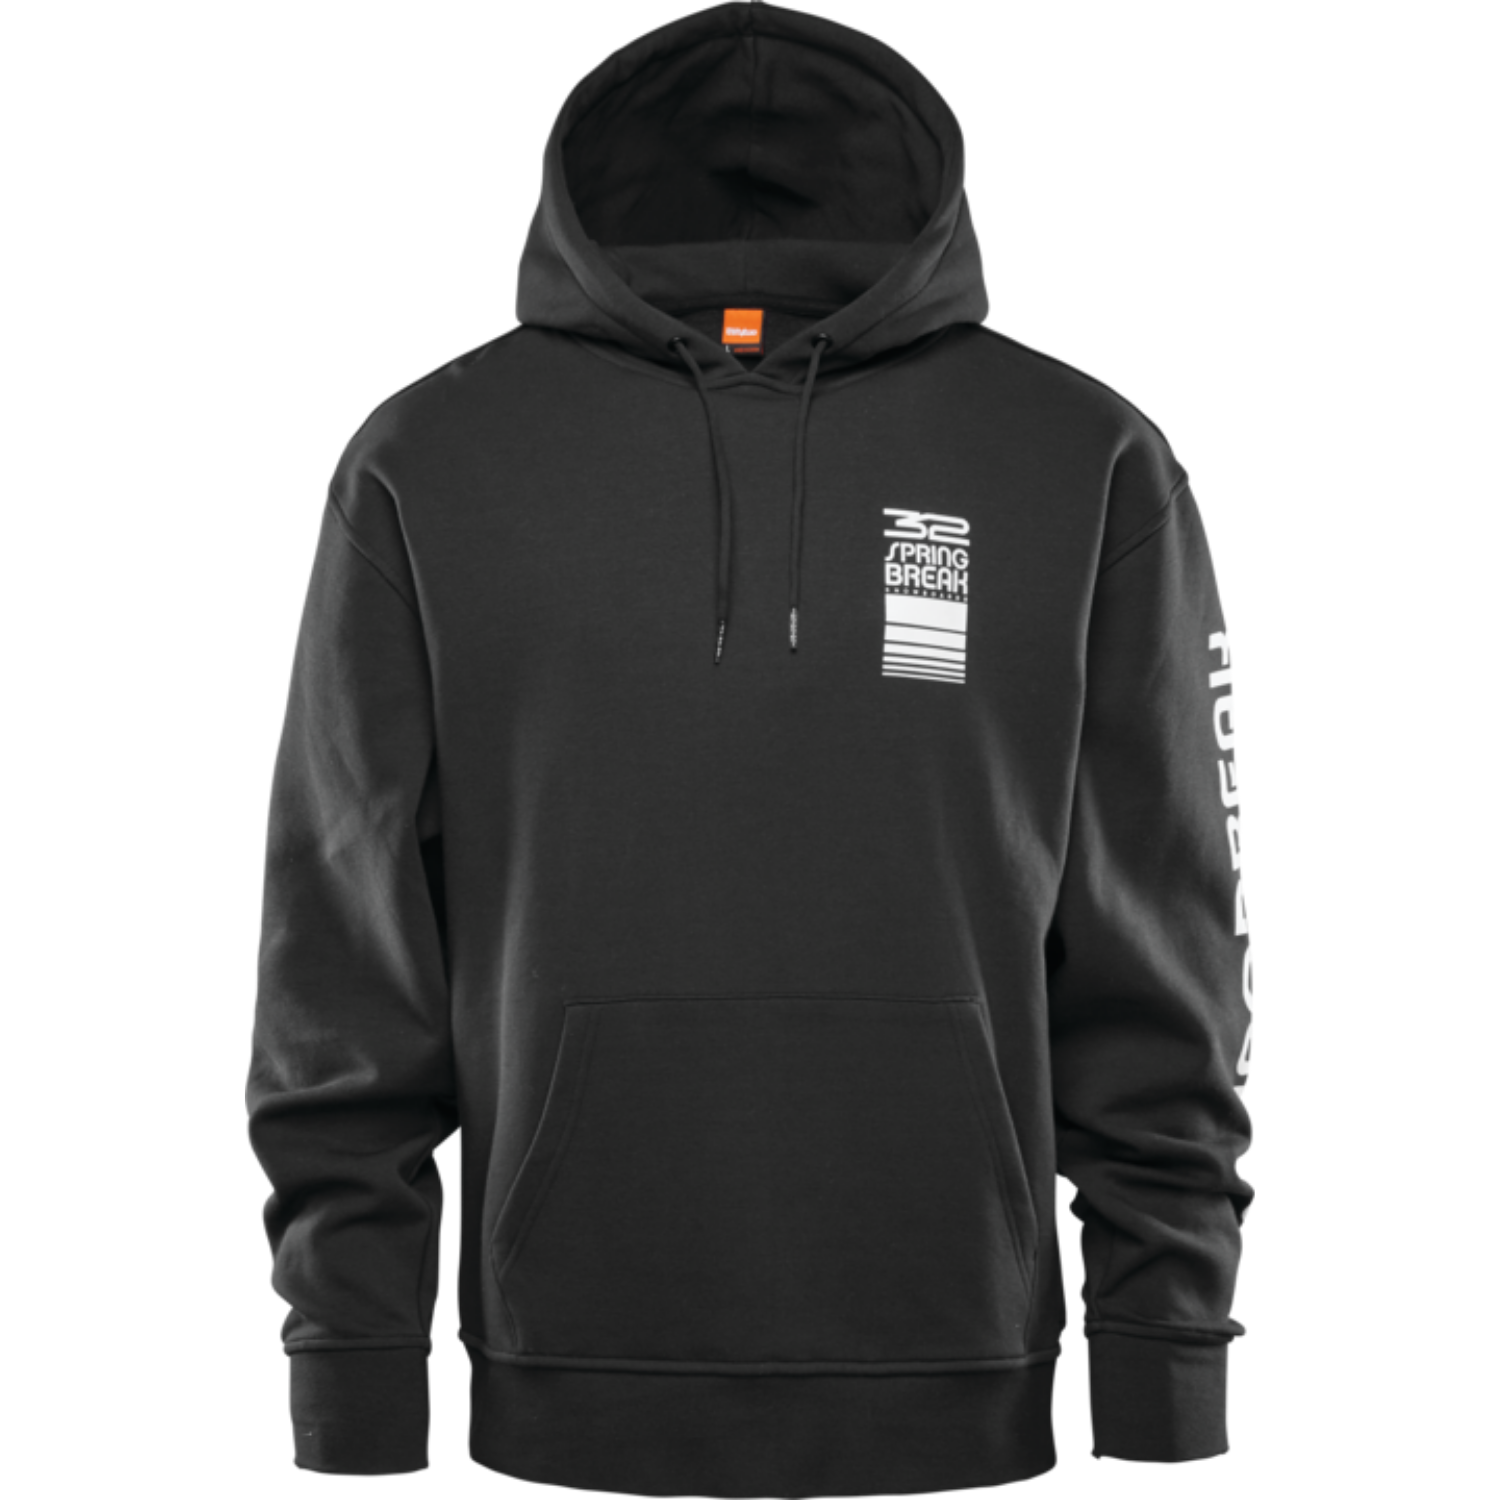 ThirtyTwo x Spring Break Repel Hoodie